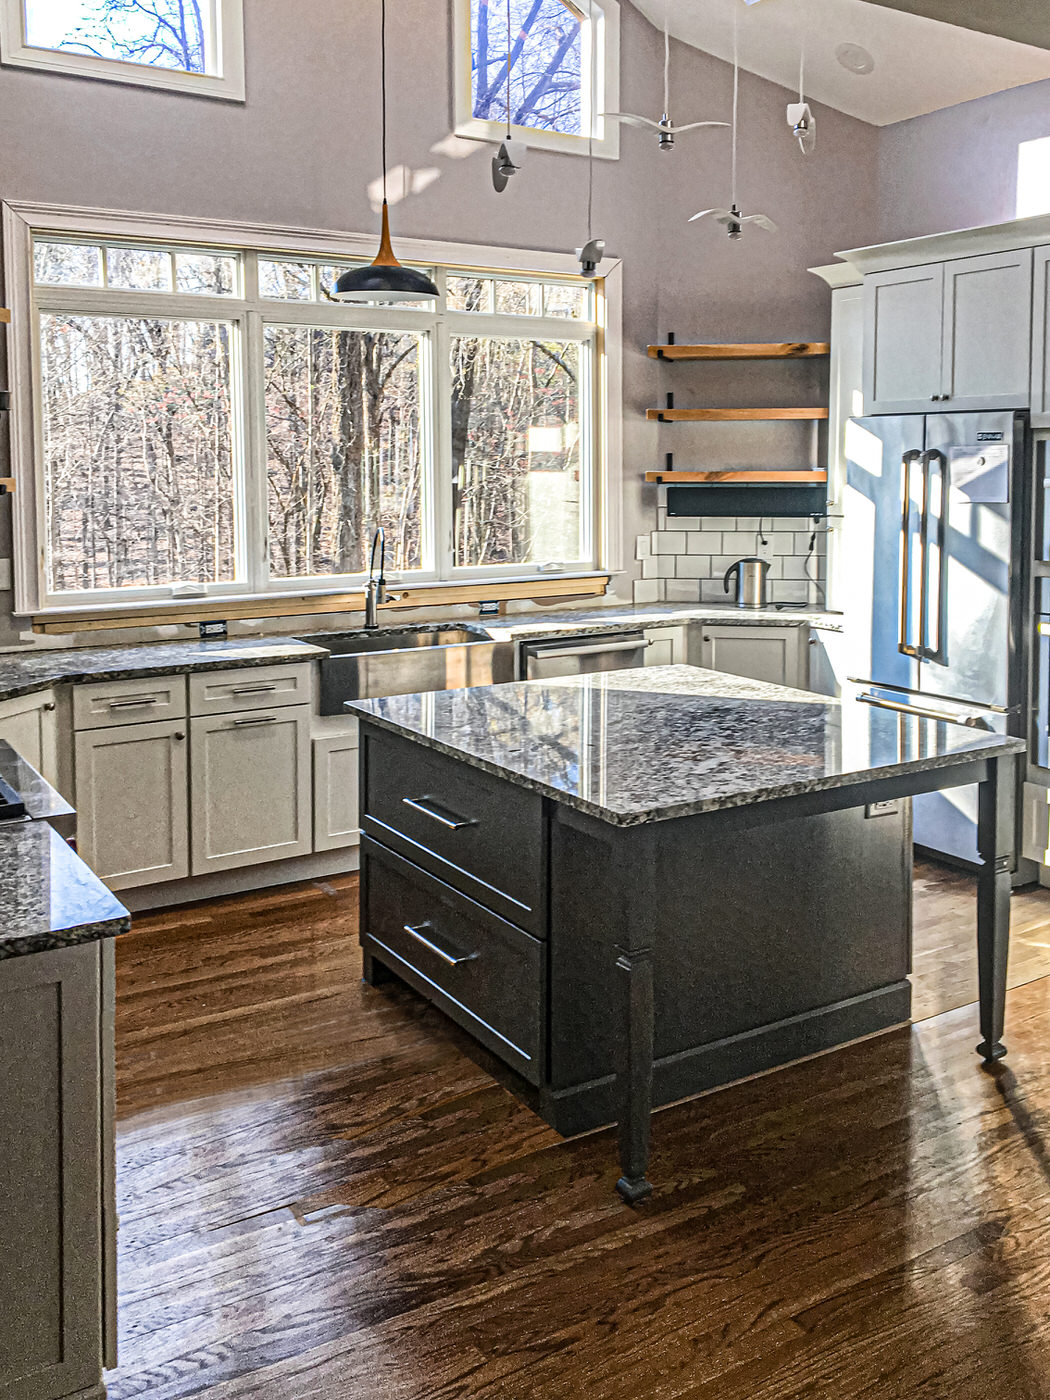 Epic Kitchen Renovation